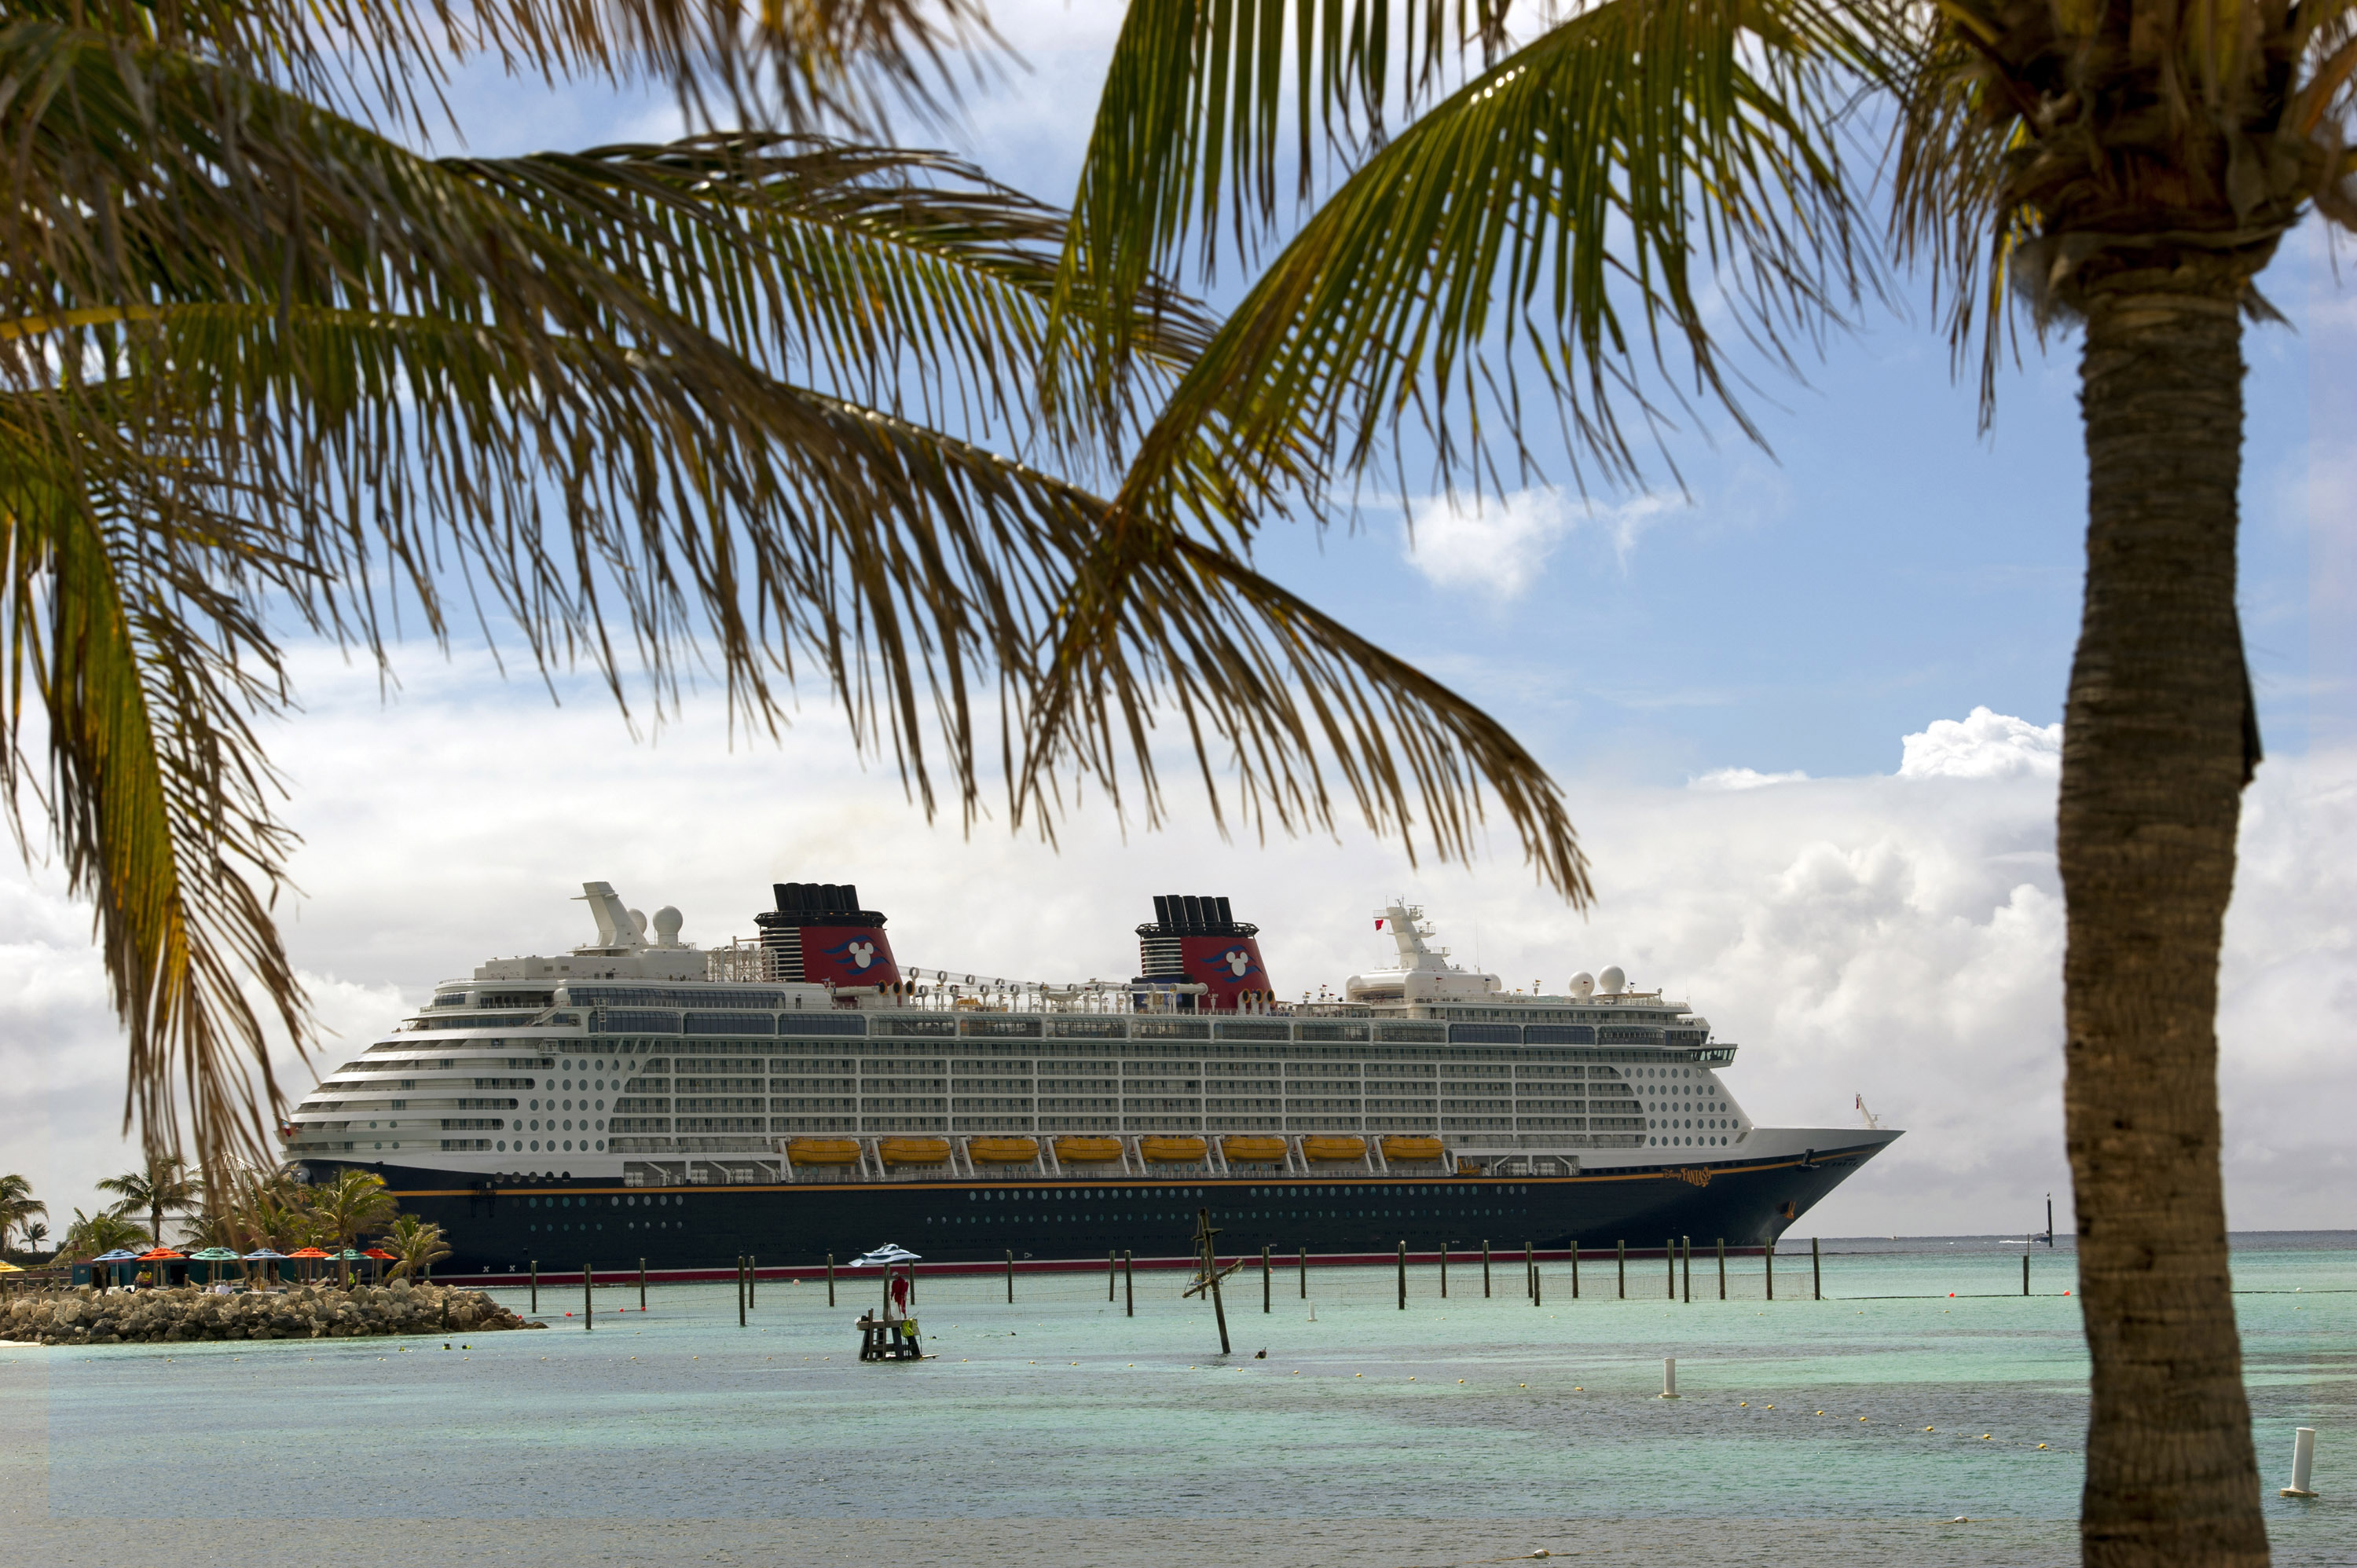 DCL ship at Castaway Cay